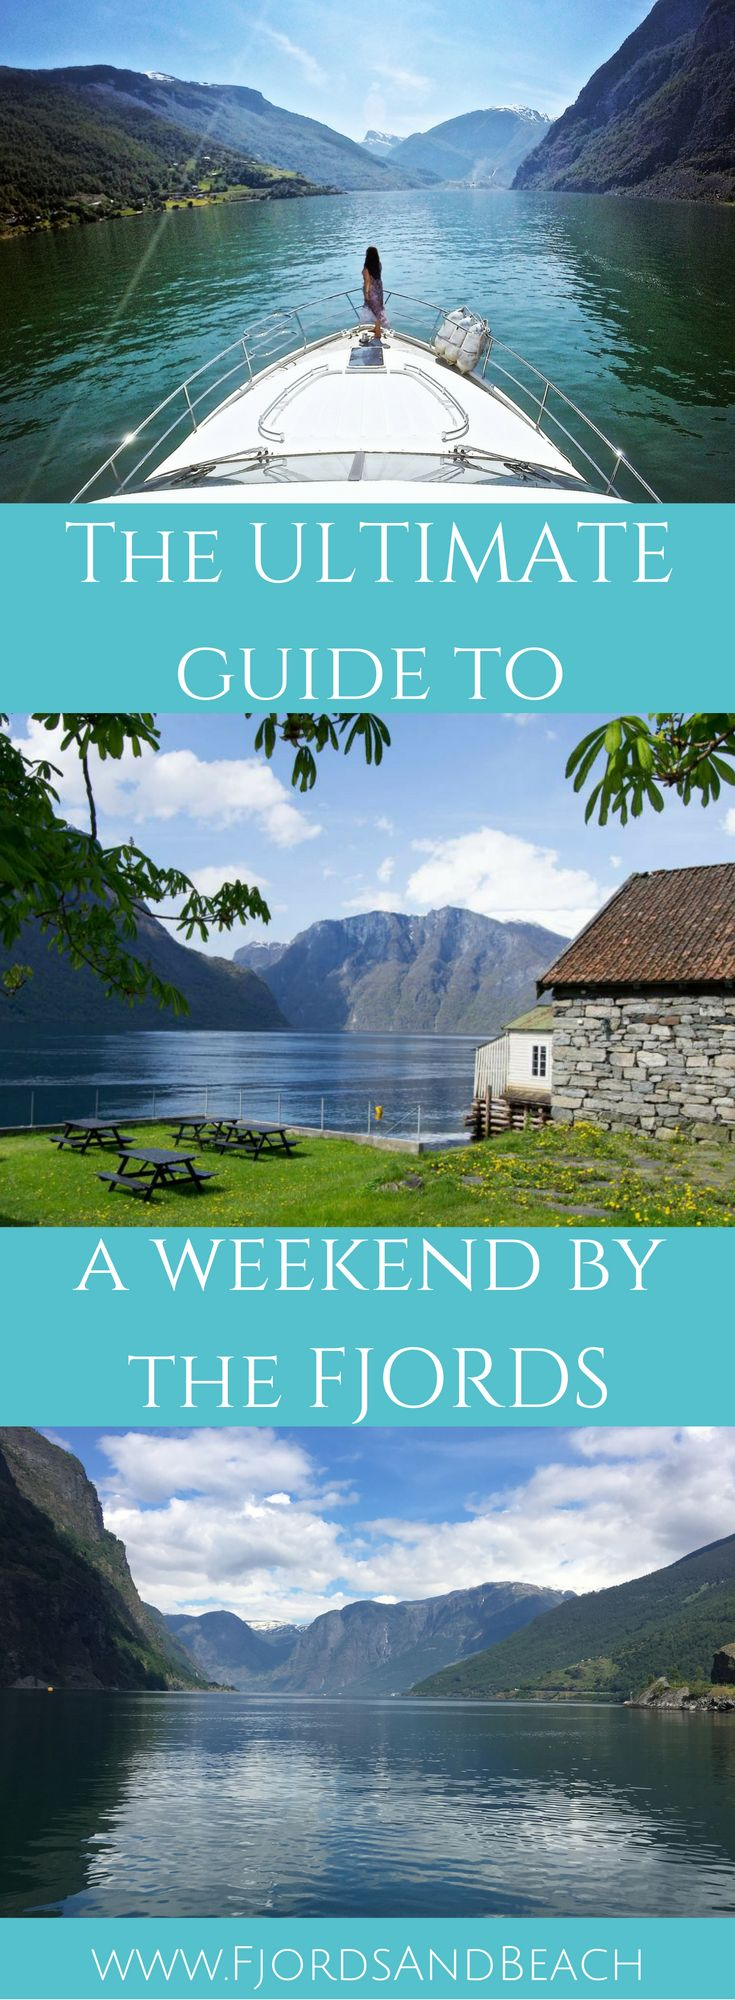 Visiting Norway? This guide to spending a weekend by the fjords of Norway is all you need! The fjords are a bucket list destination to many, and a must when you Visit Norway.